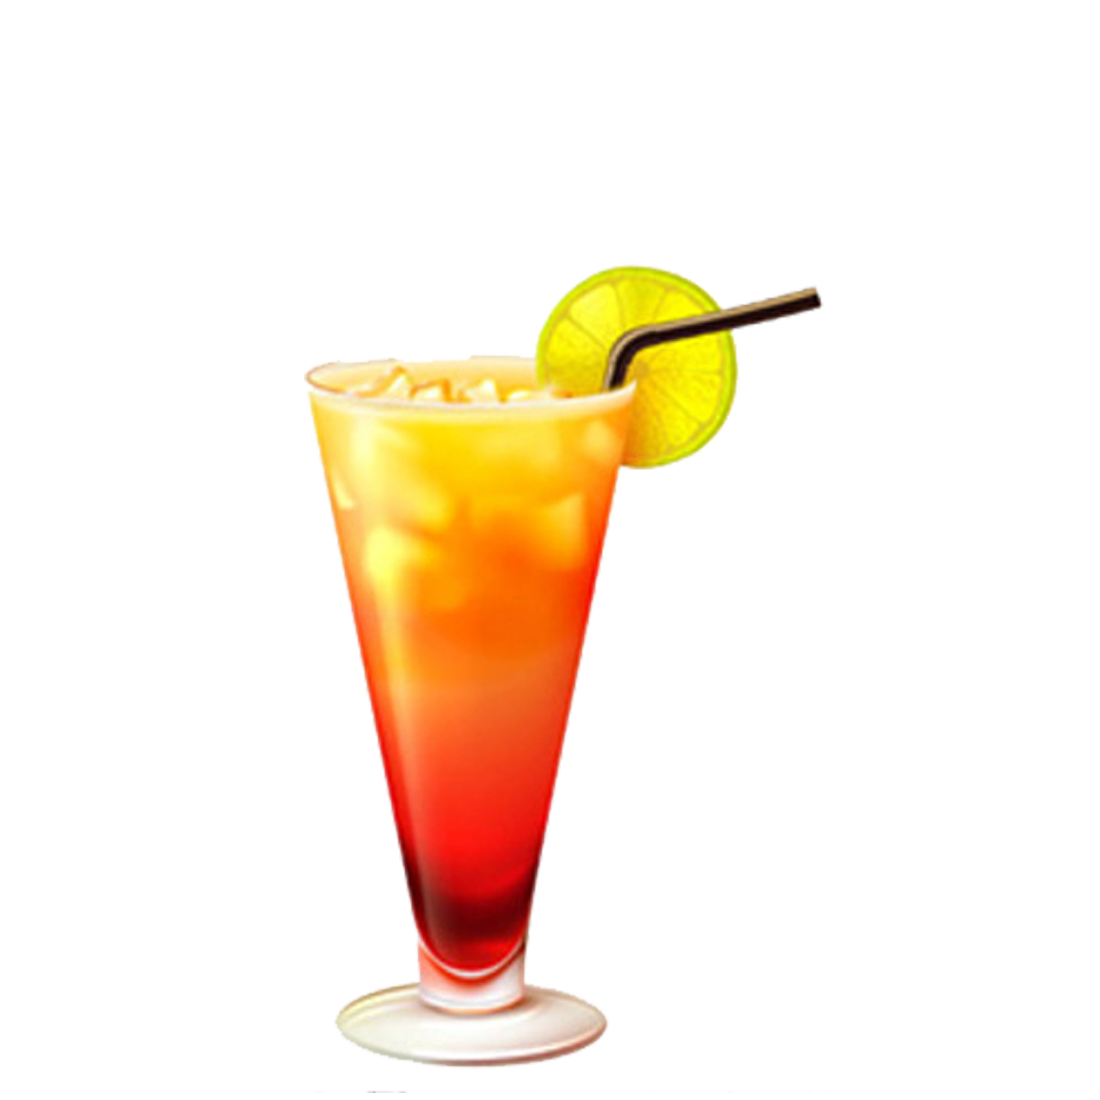 Tequila sunrise png. Cocktail shot glass free